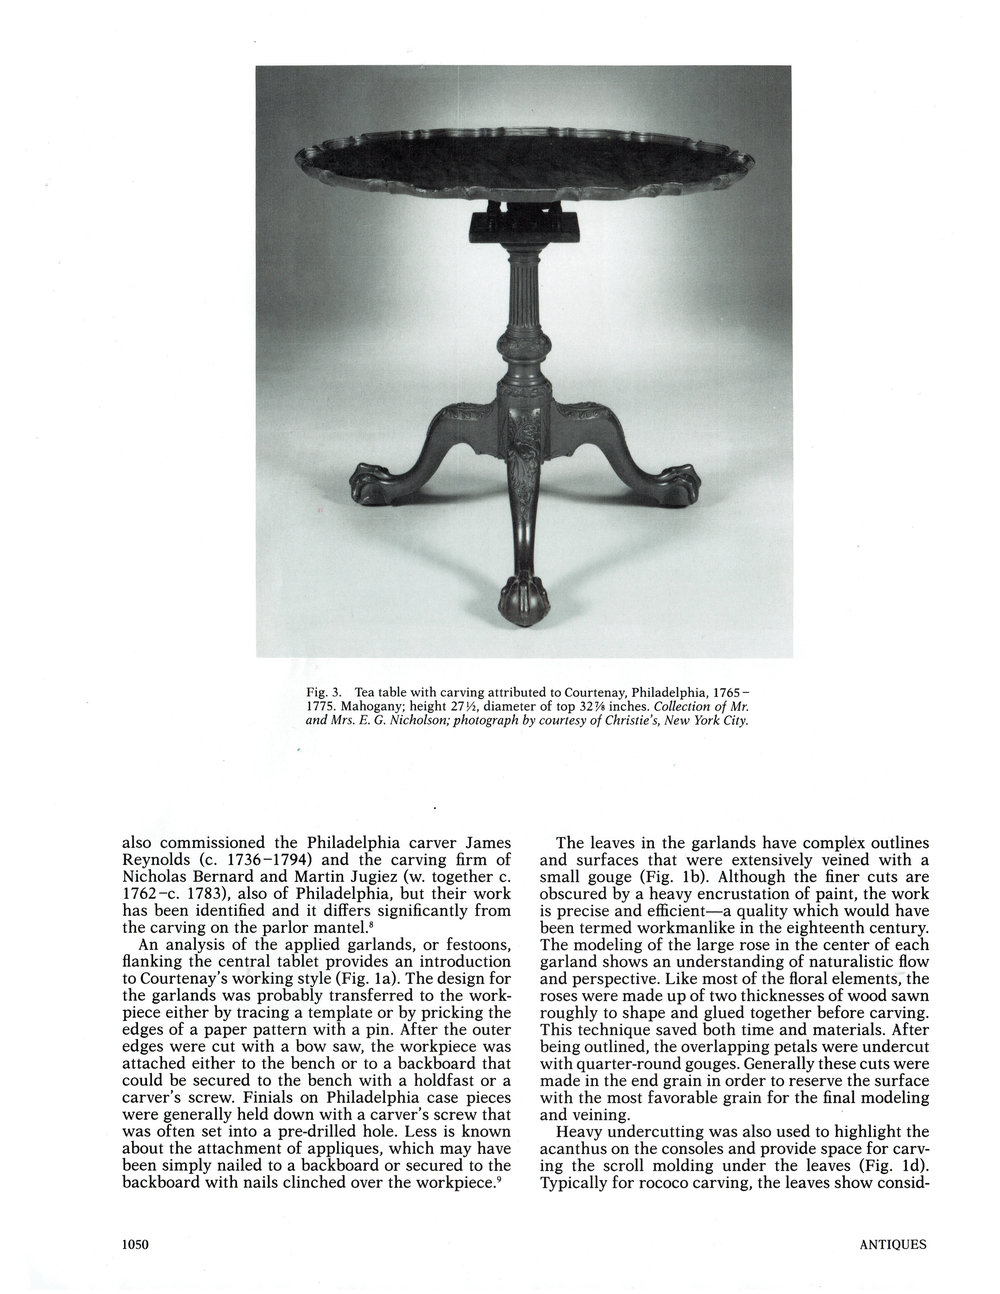 2018.01.16 CPF Antiques Article 08 - Pg1050.jpg